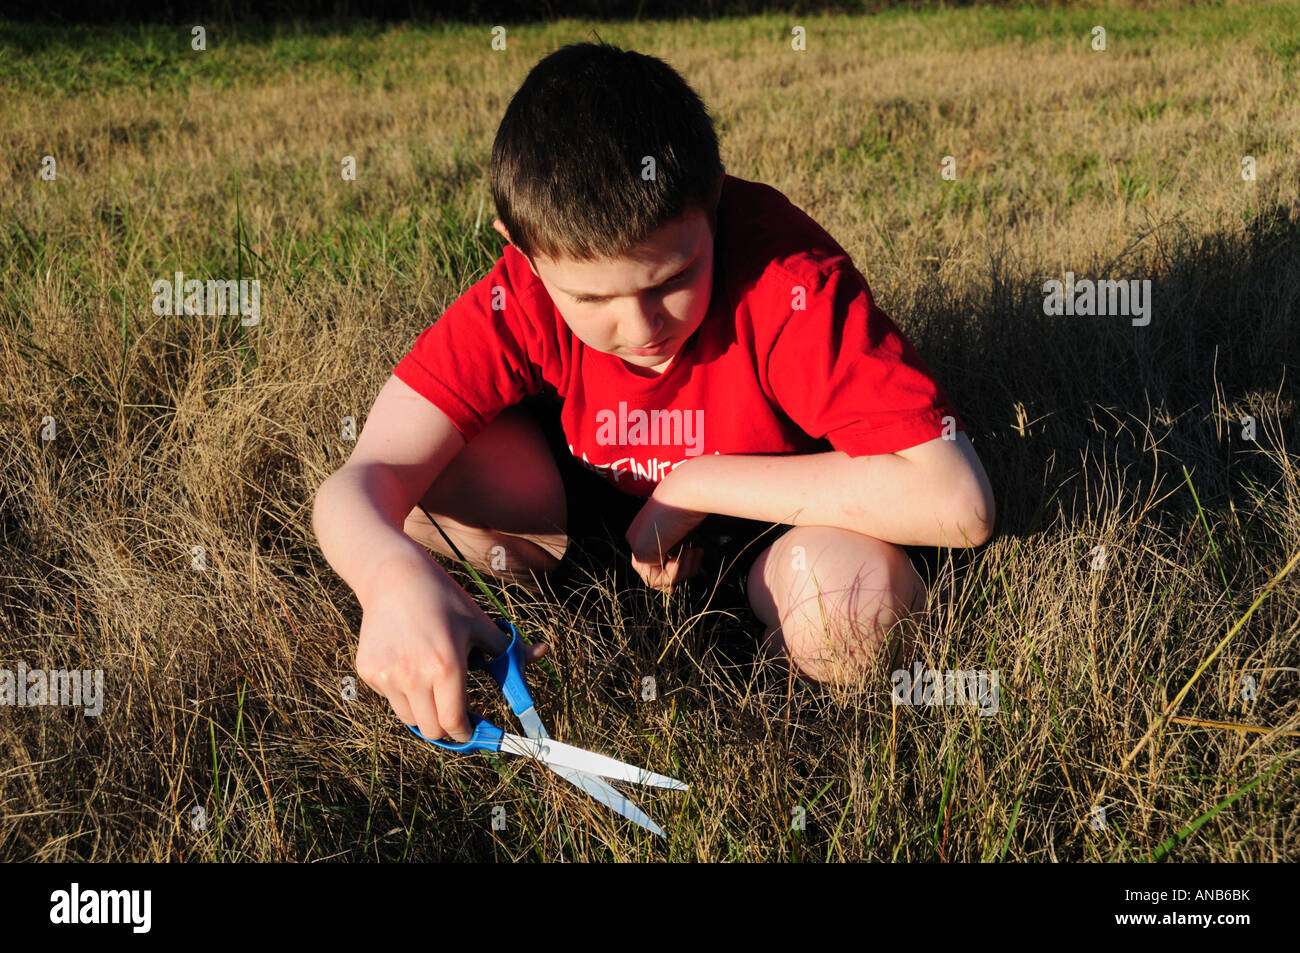 A young boy cuts the grass the slow way one blade at a time. Symbolizes the concept of hard detail at work or a - Stock Image